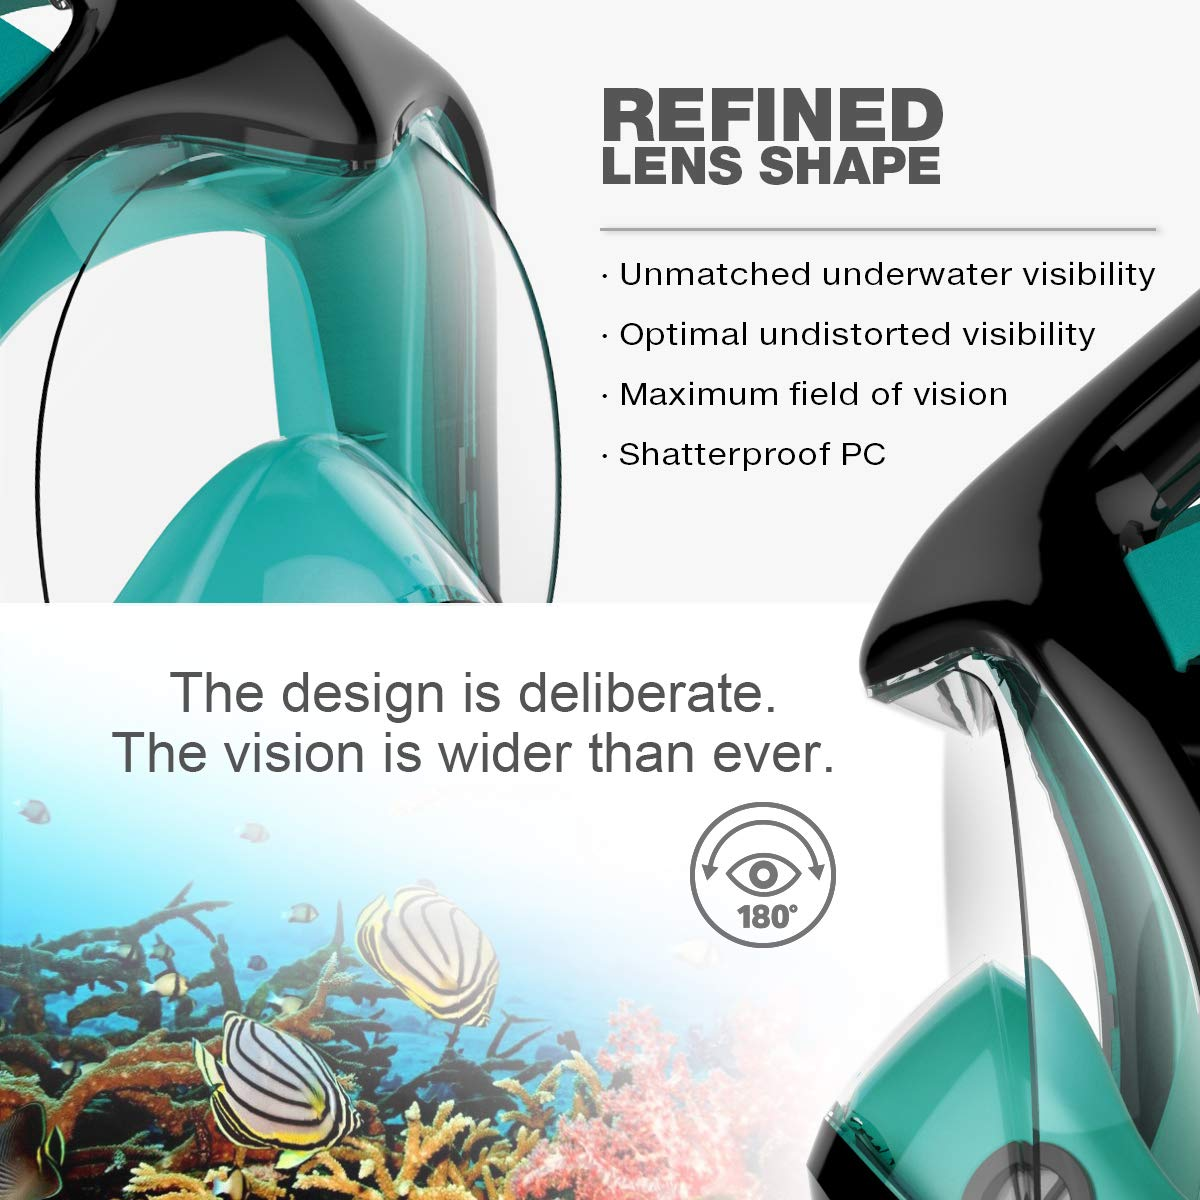 Poppin Kicks Full Face Snorkel Mask for Adult Youth and Kids | 180° Panoramic View Anti-Fog Anti-Leak Easy Breathe GoPro Compatible w/Detachable Camera Mount (3.0 Black/Marine Green, Small/Medium)